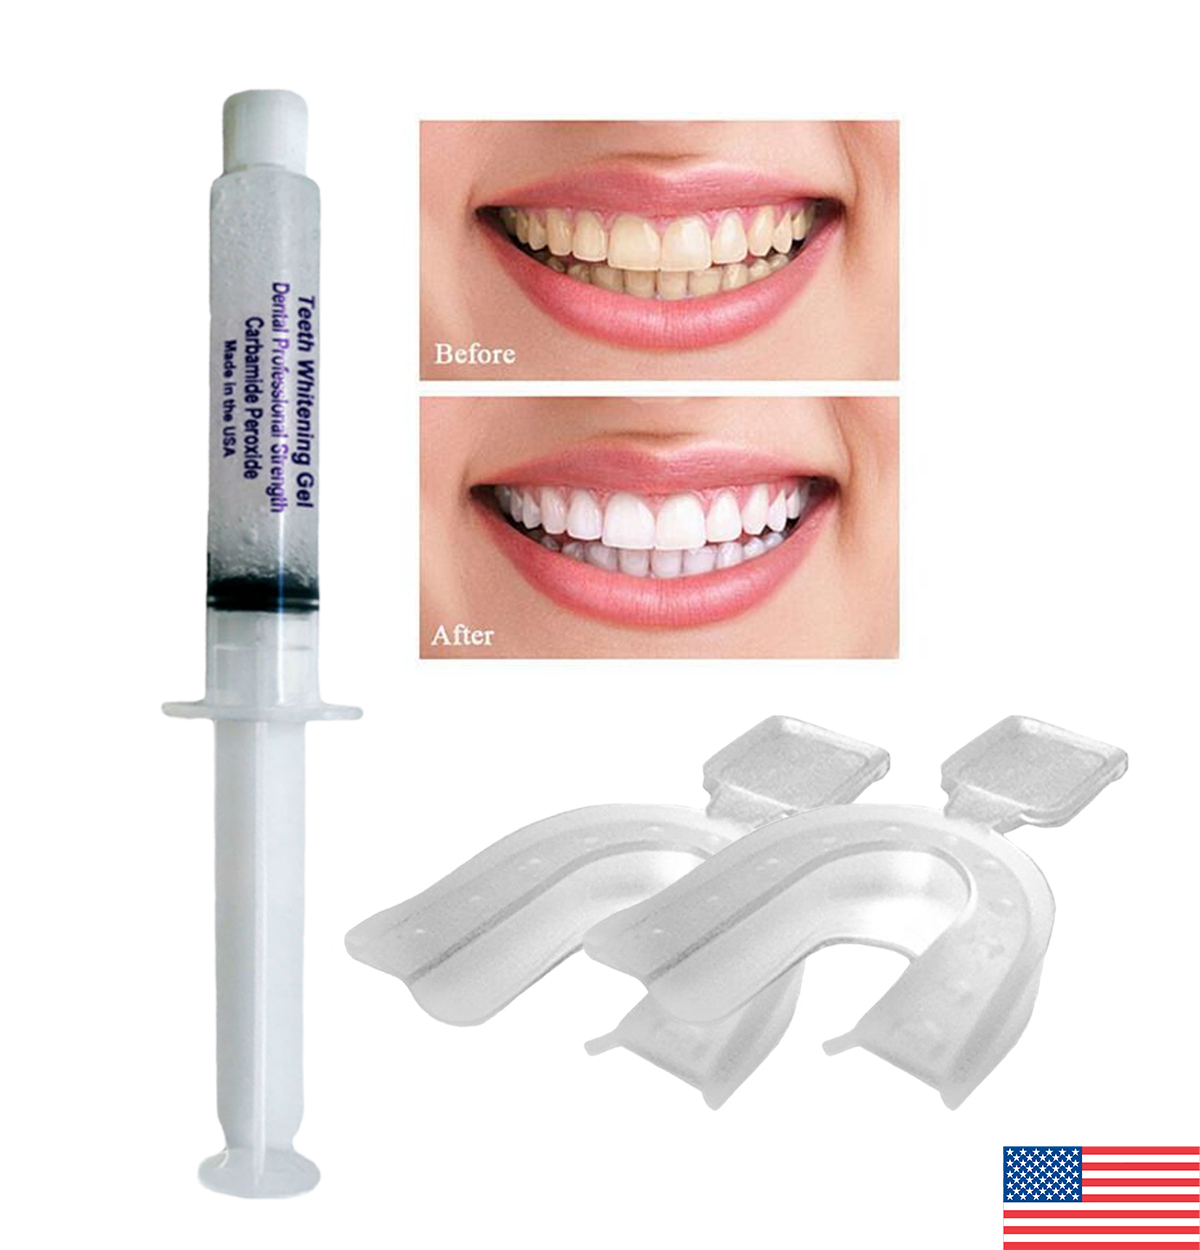 Teeth Whitening Gel Syringe 35% Tooth Bleaching + FREE 2 Thermoforming Trays ! ! - $8.95